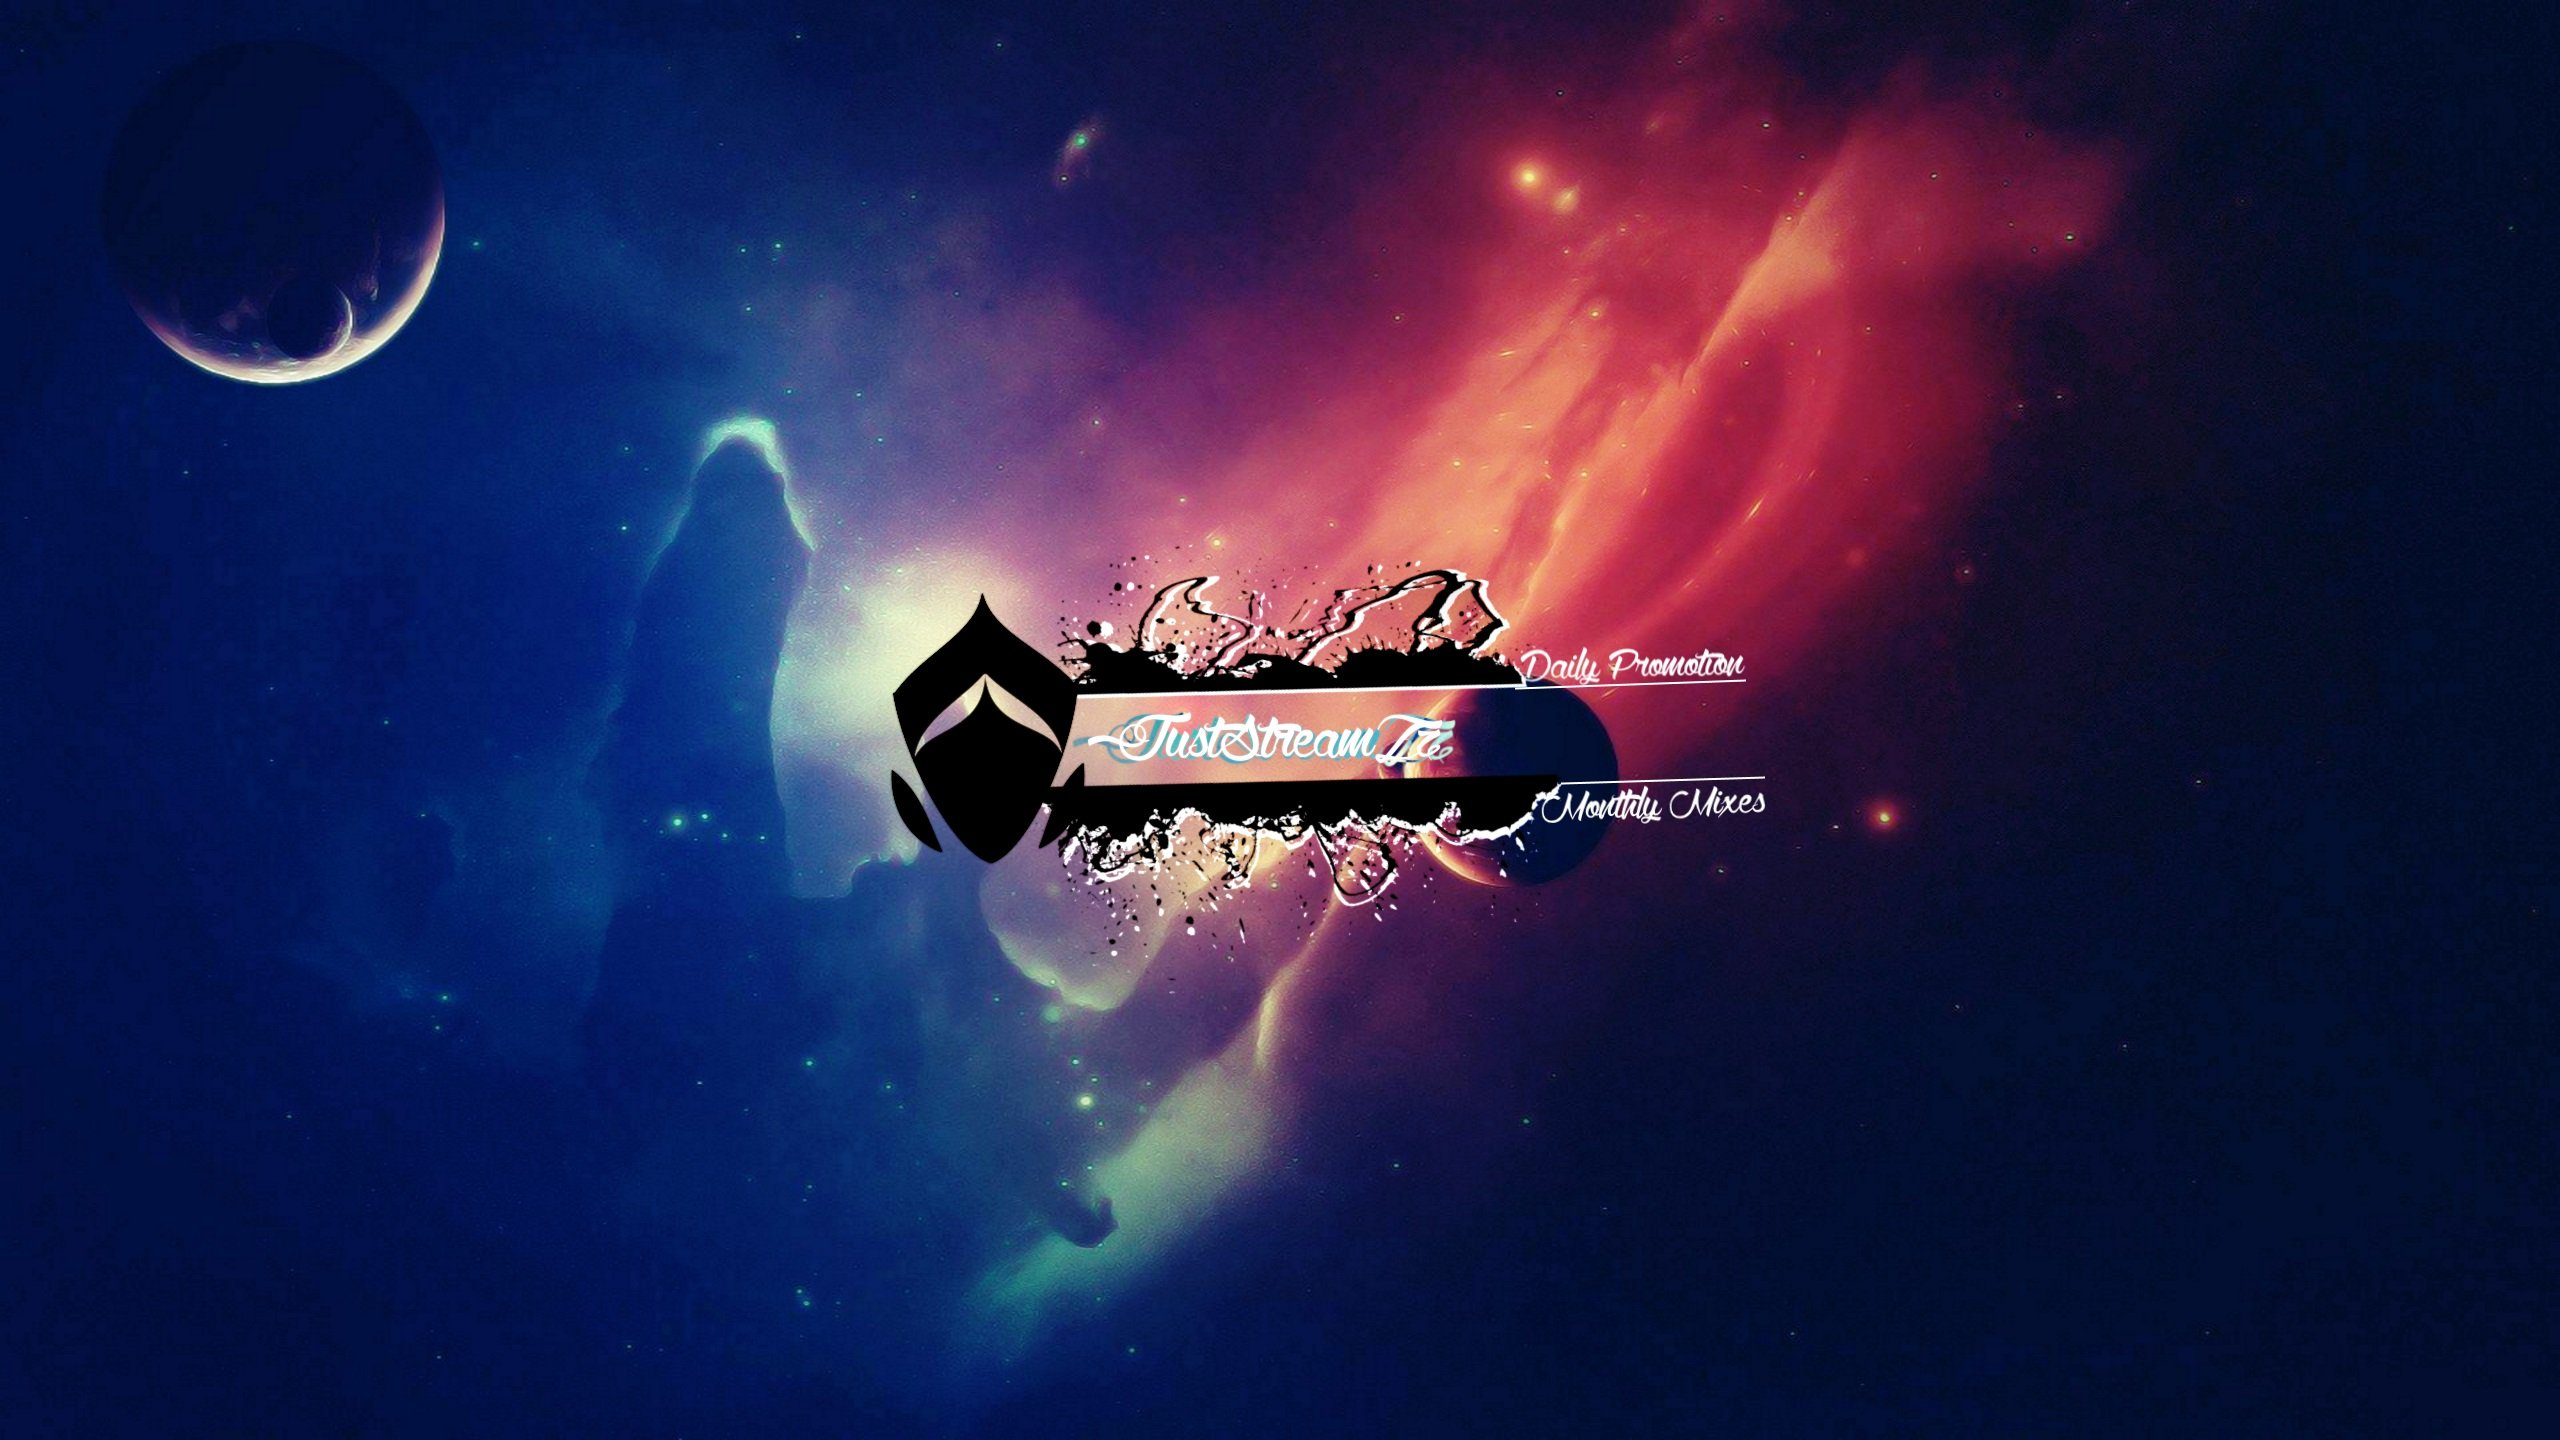 Banner youtube great apollo space universe juststreamzz artwork ...